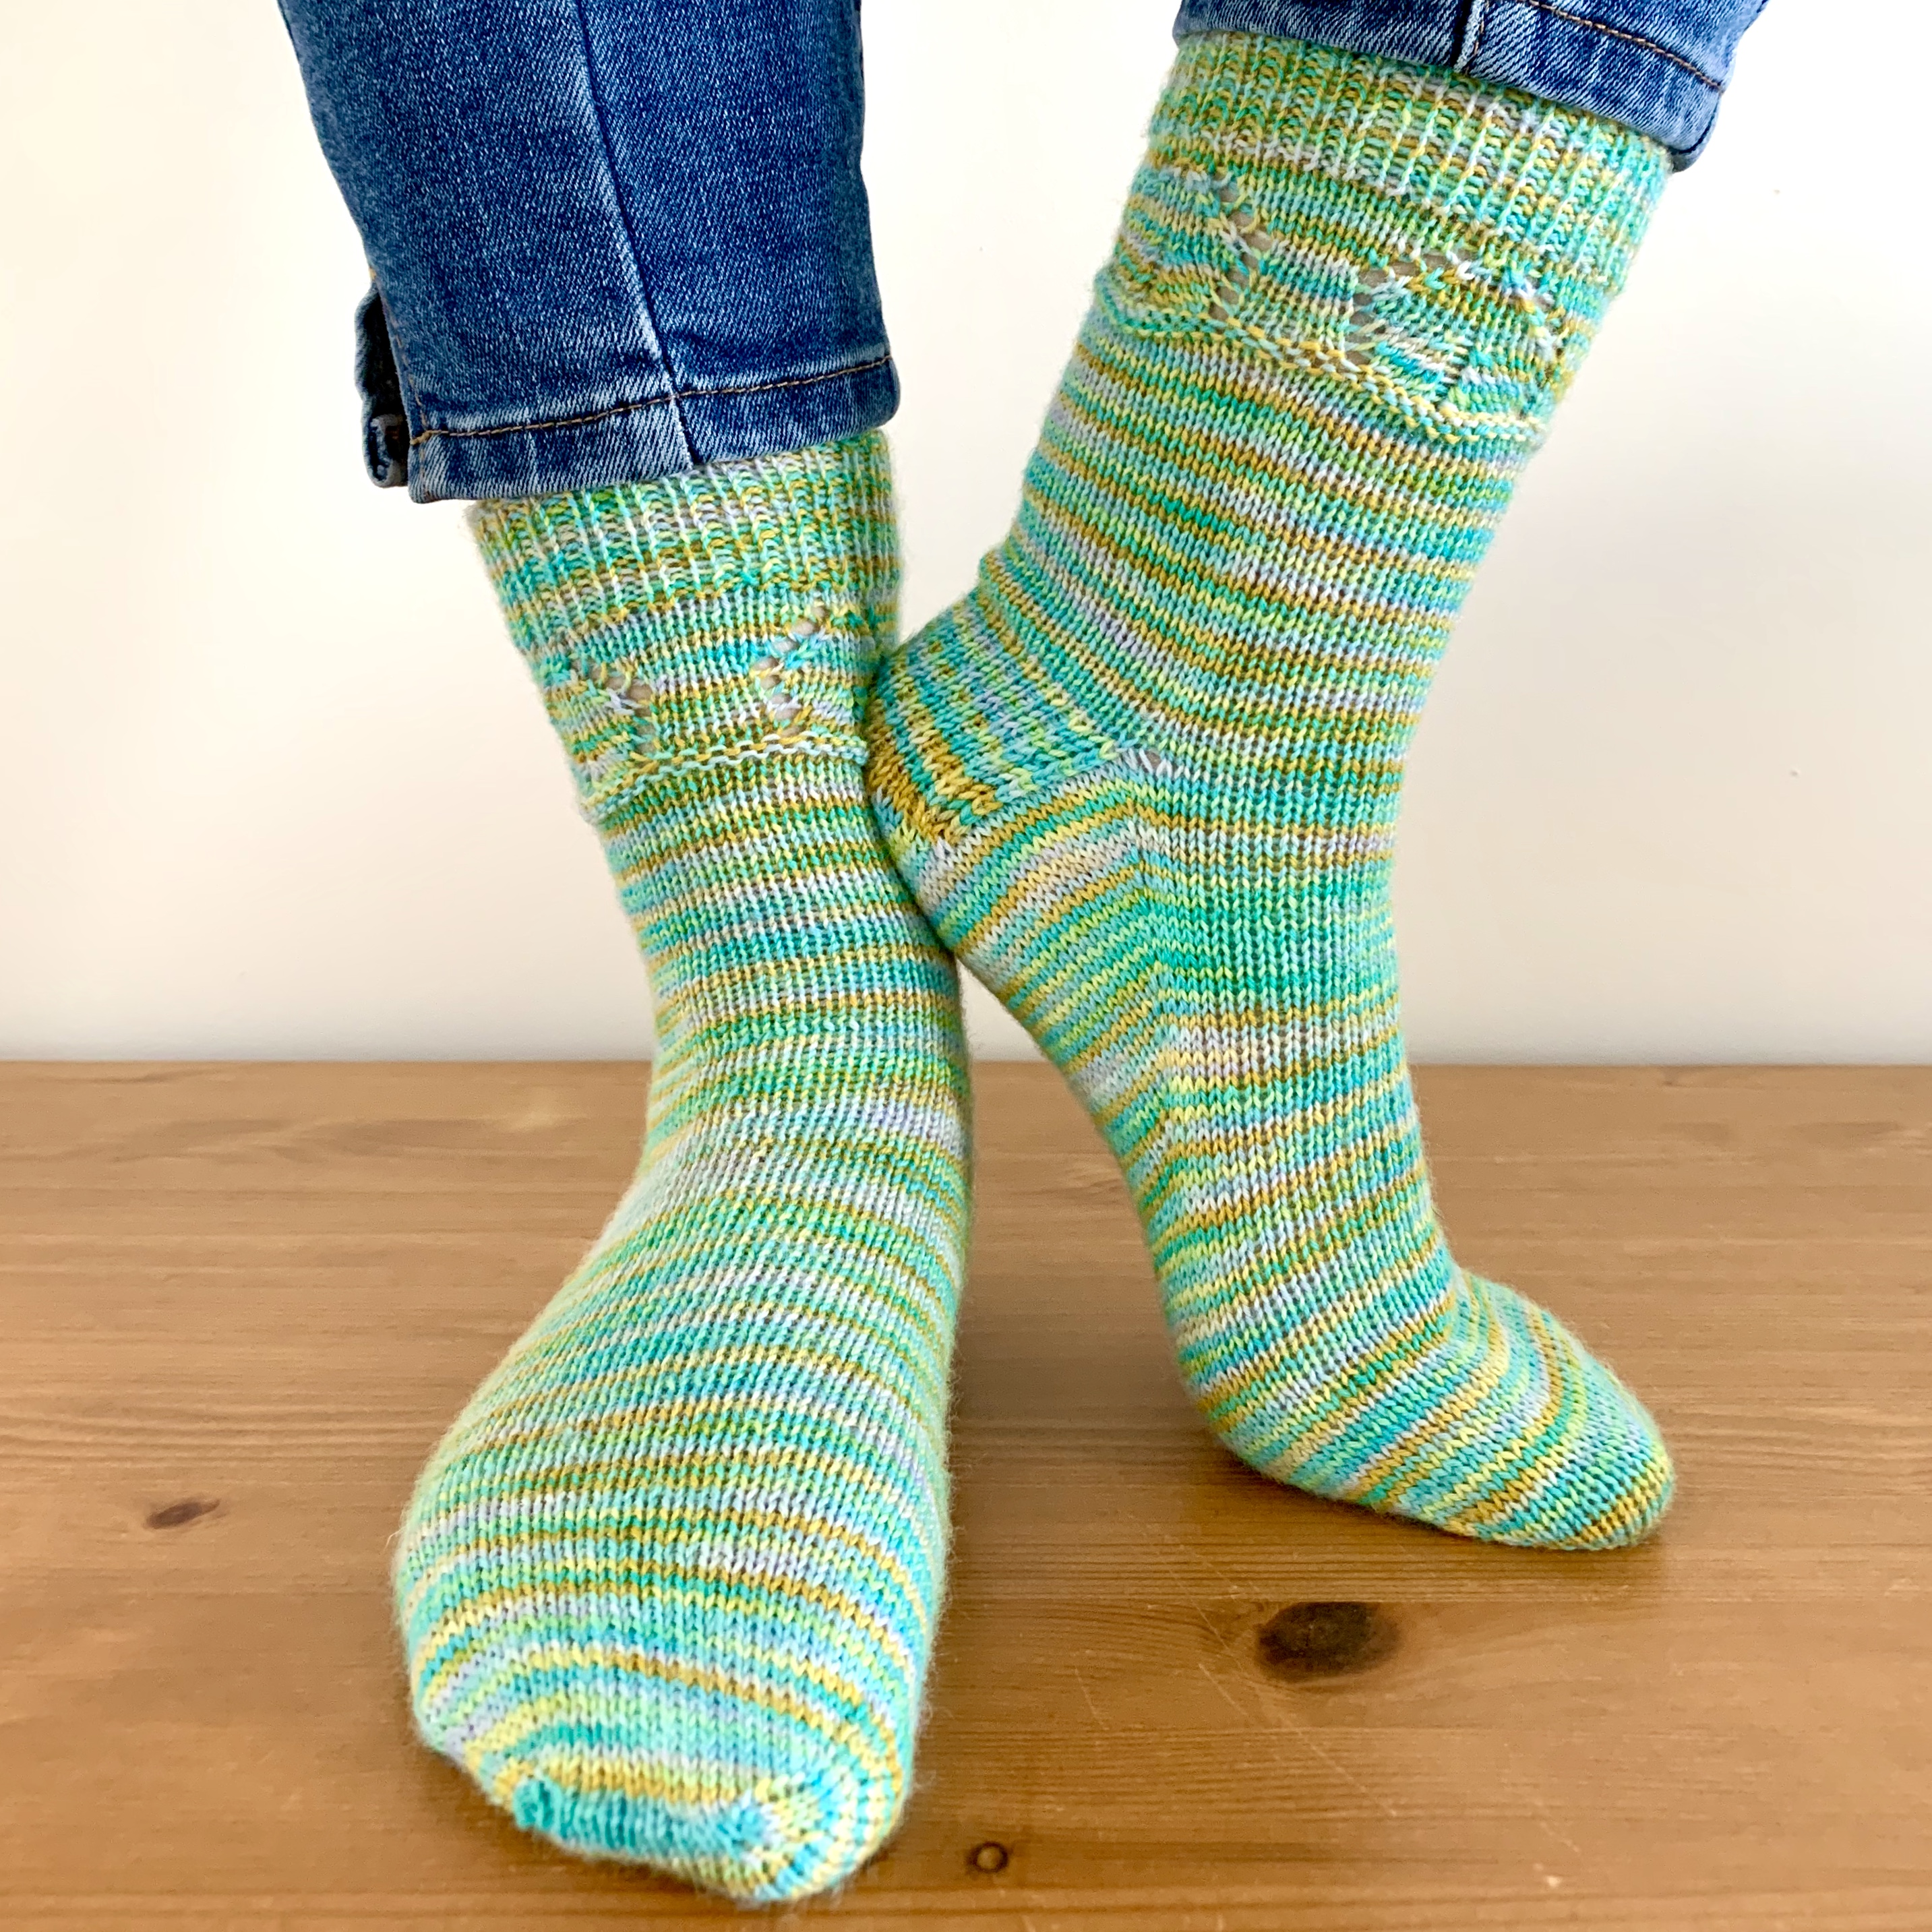 Birdhouse Socks. Plain socks in turquoise, yellow and white self-striping yarn. Features a birdhouse motif around the top of the leg.